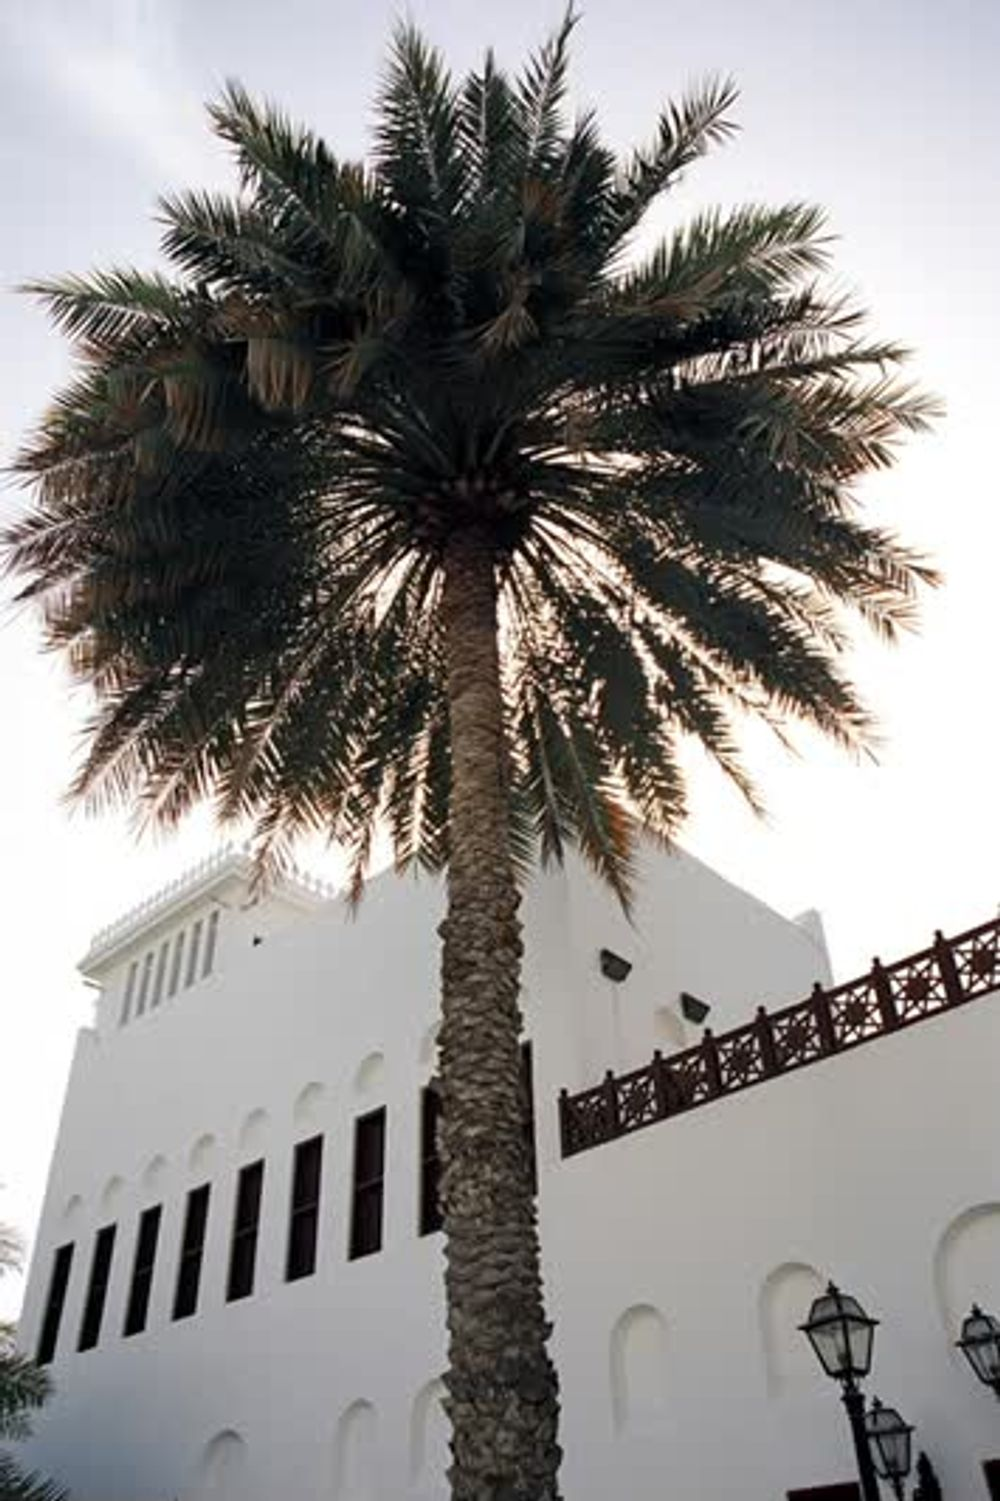 Tall Palm Tree by a White Building